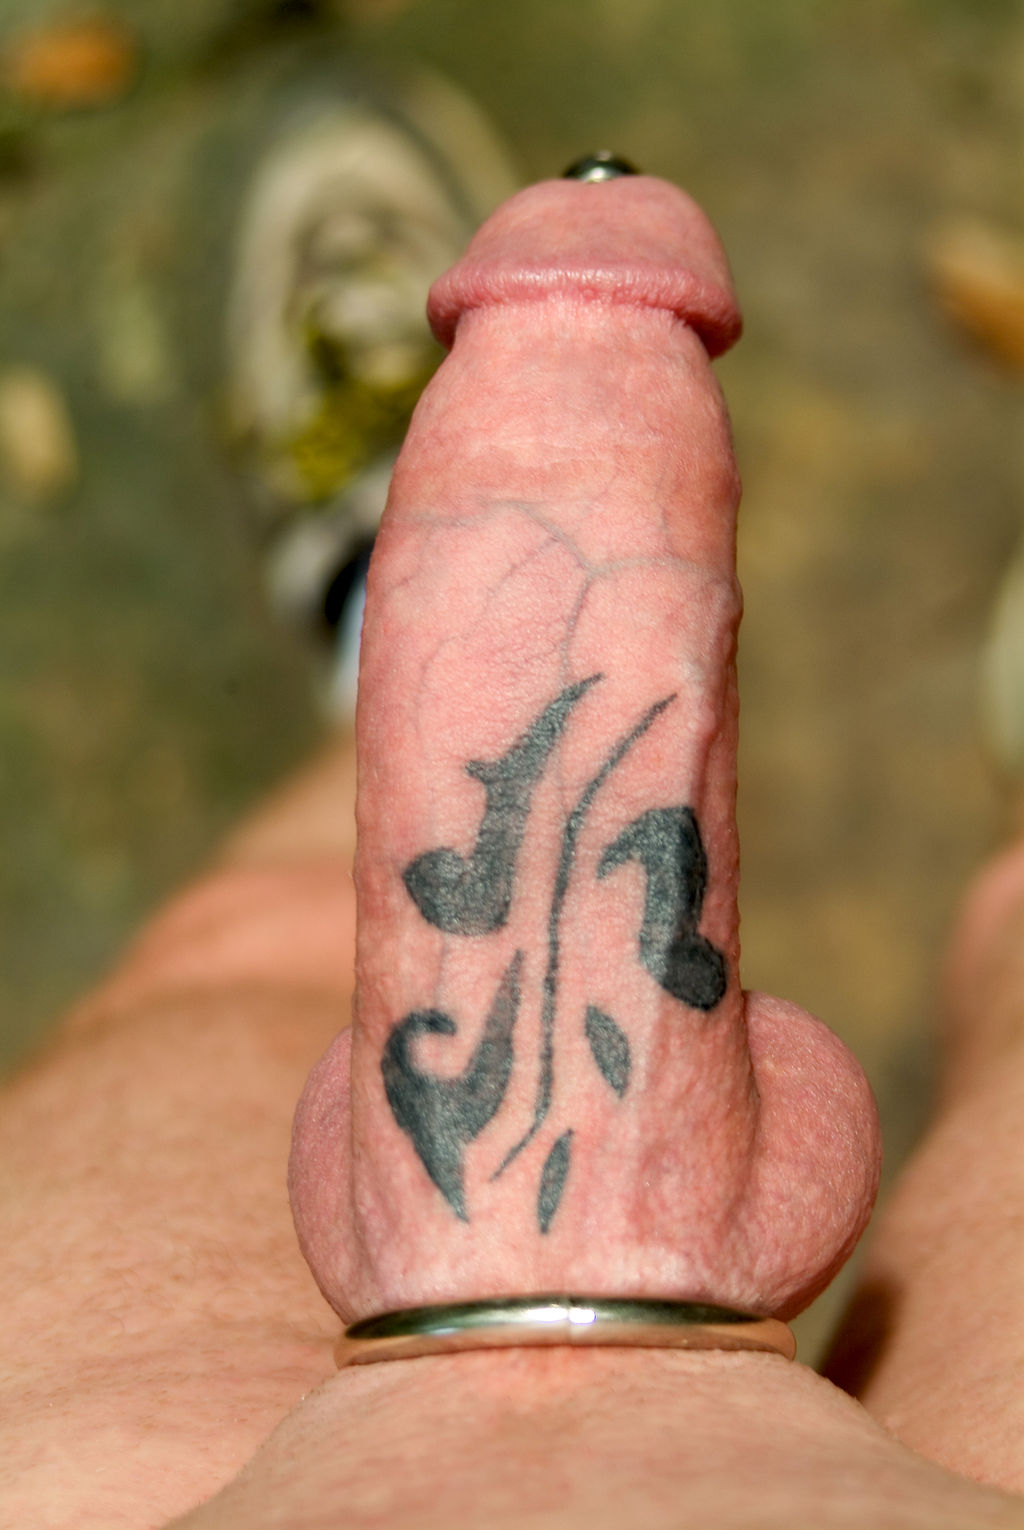 Dick ring tattoos and dick mods net  softcore movie